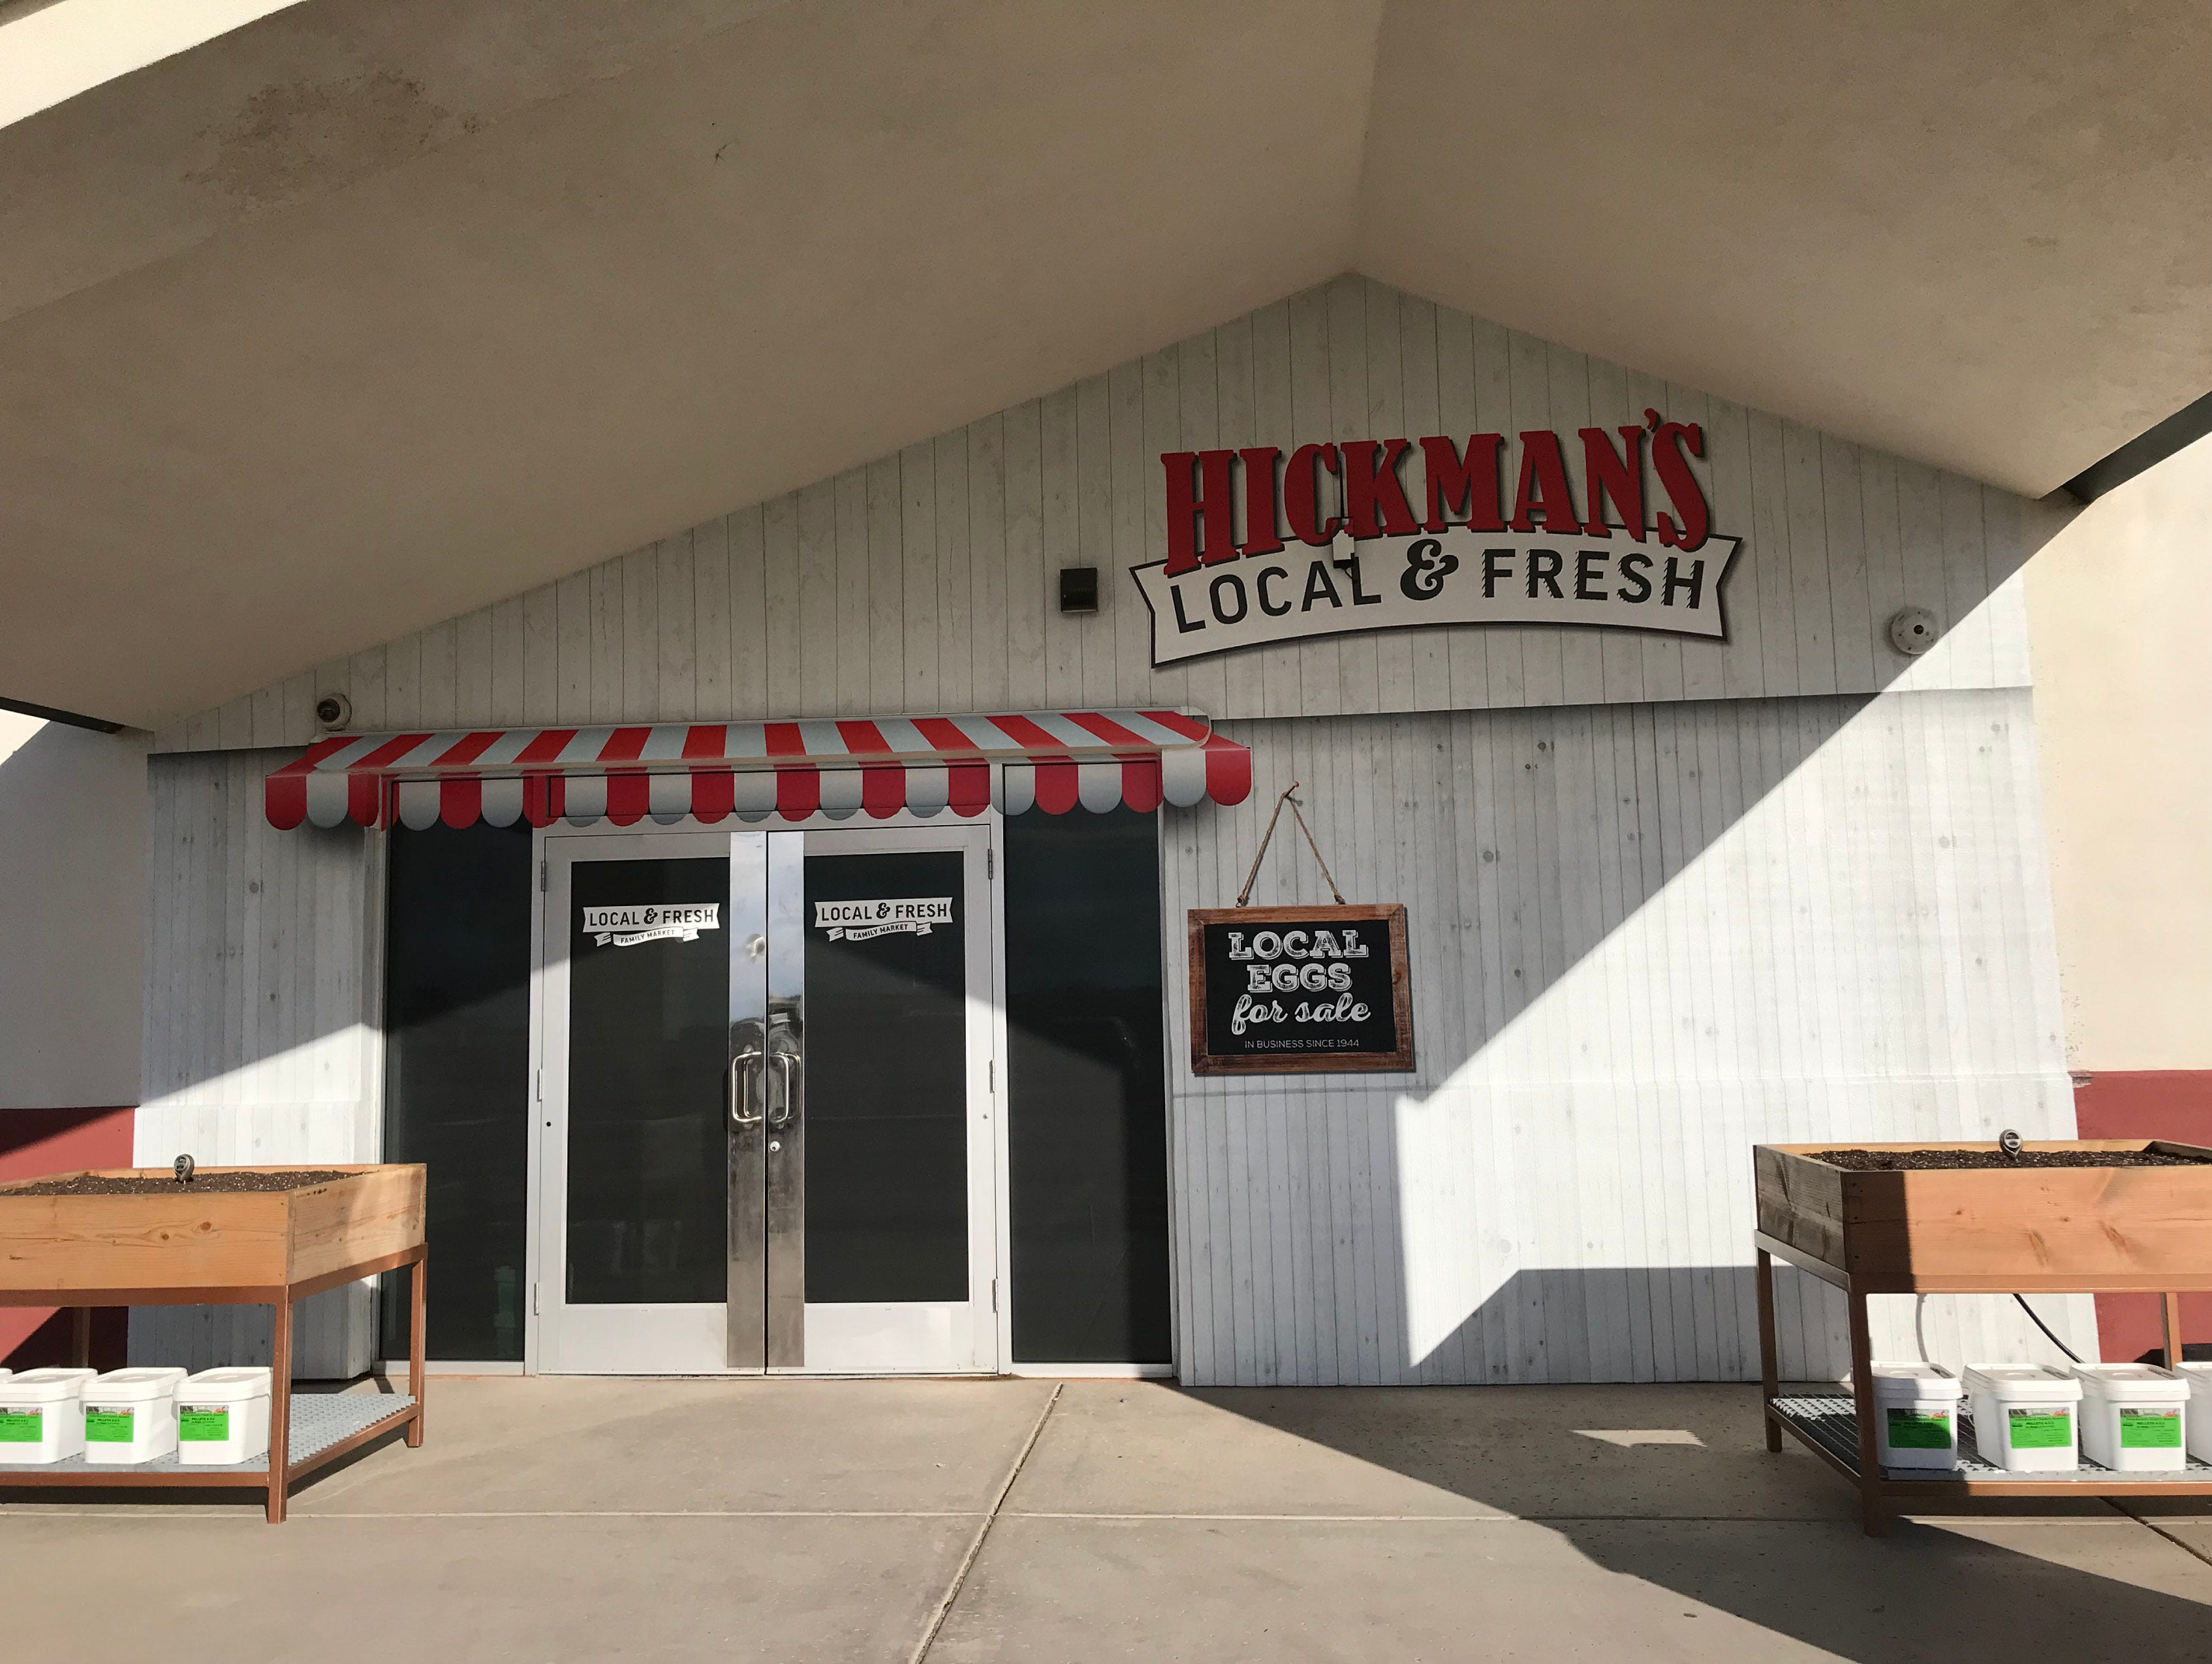 The Hickman's Family Farm store now sells items including milk, sour cream and local breakfast meats.